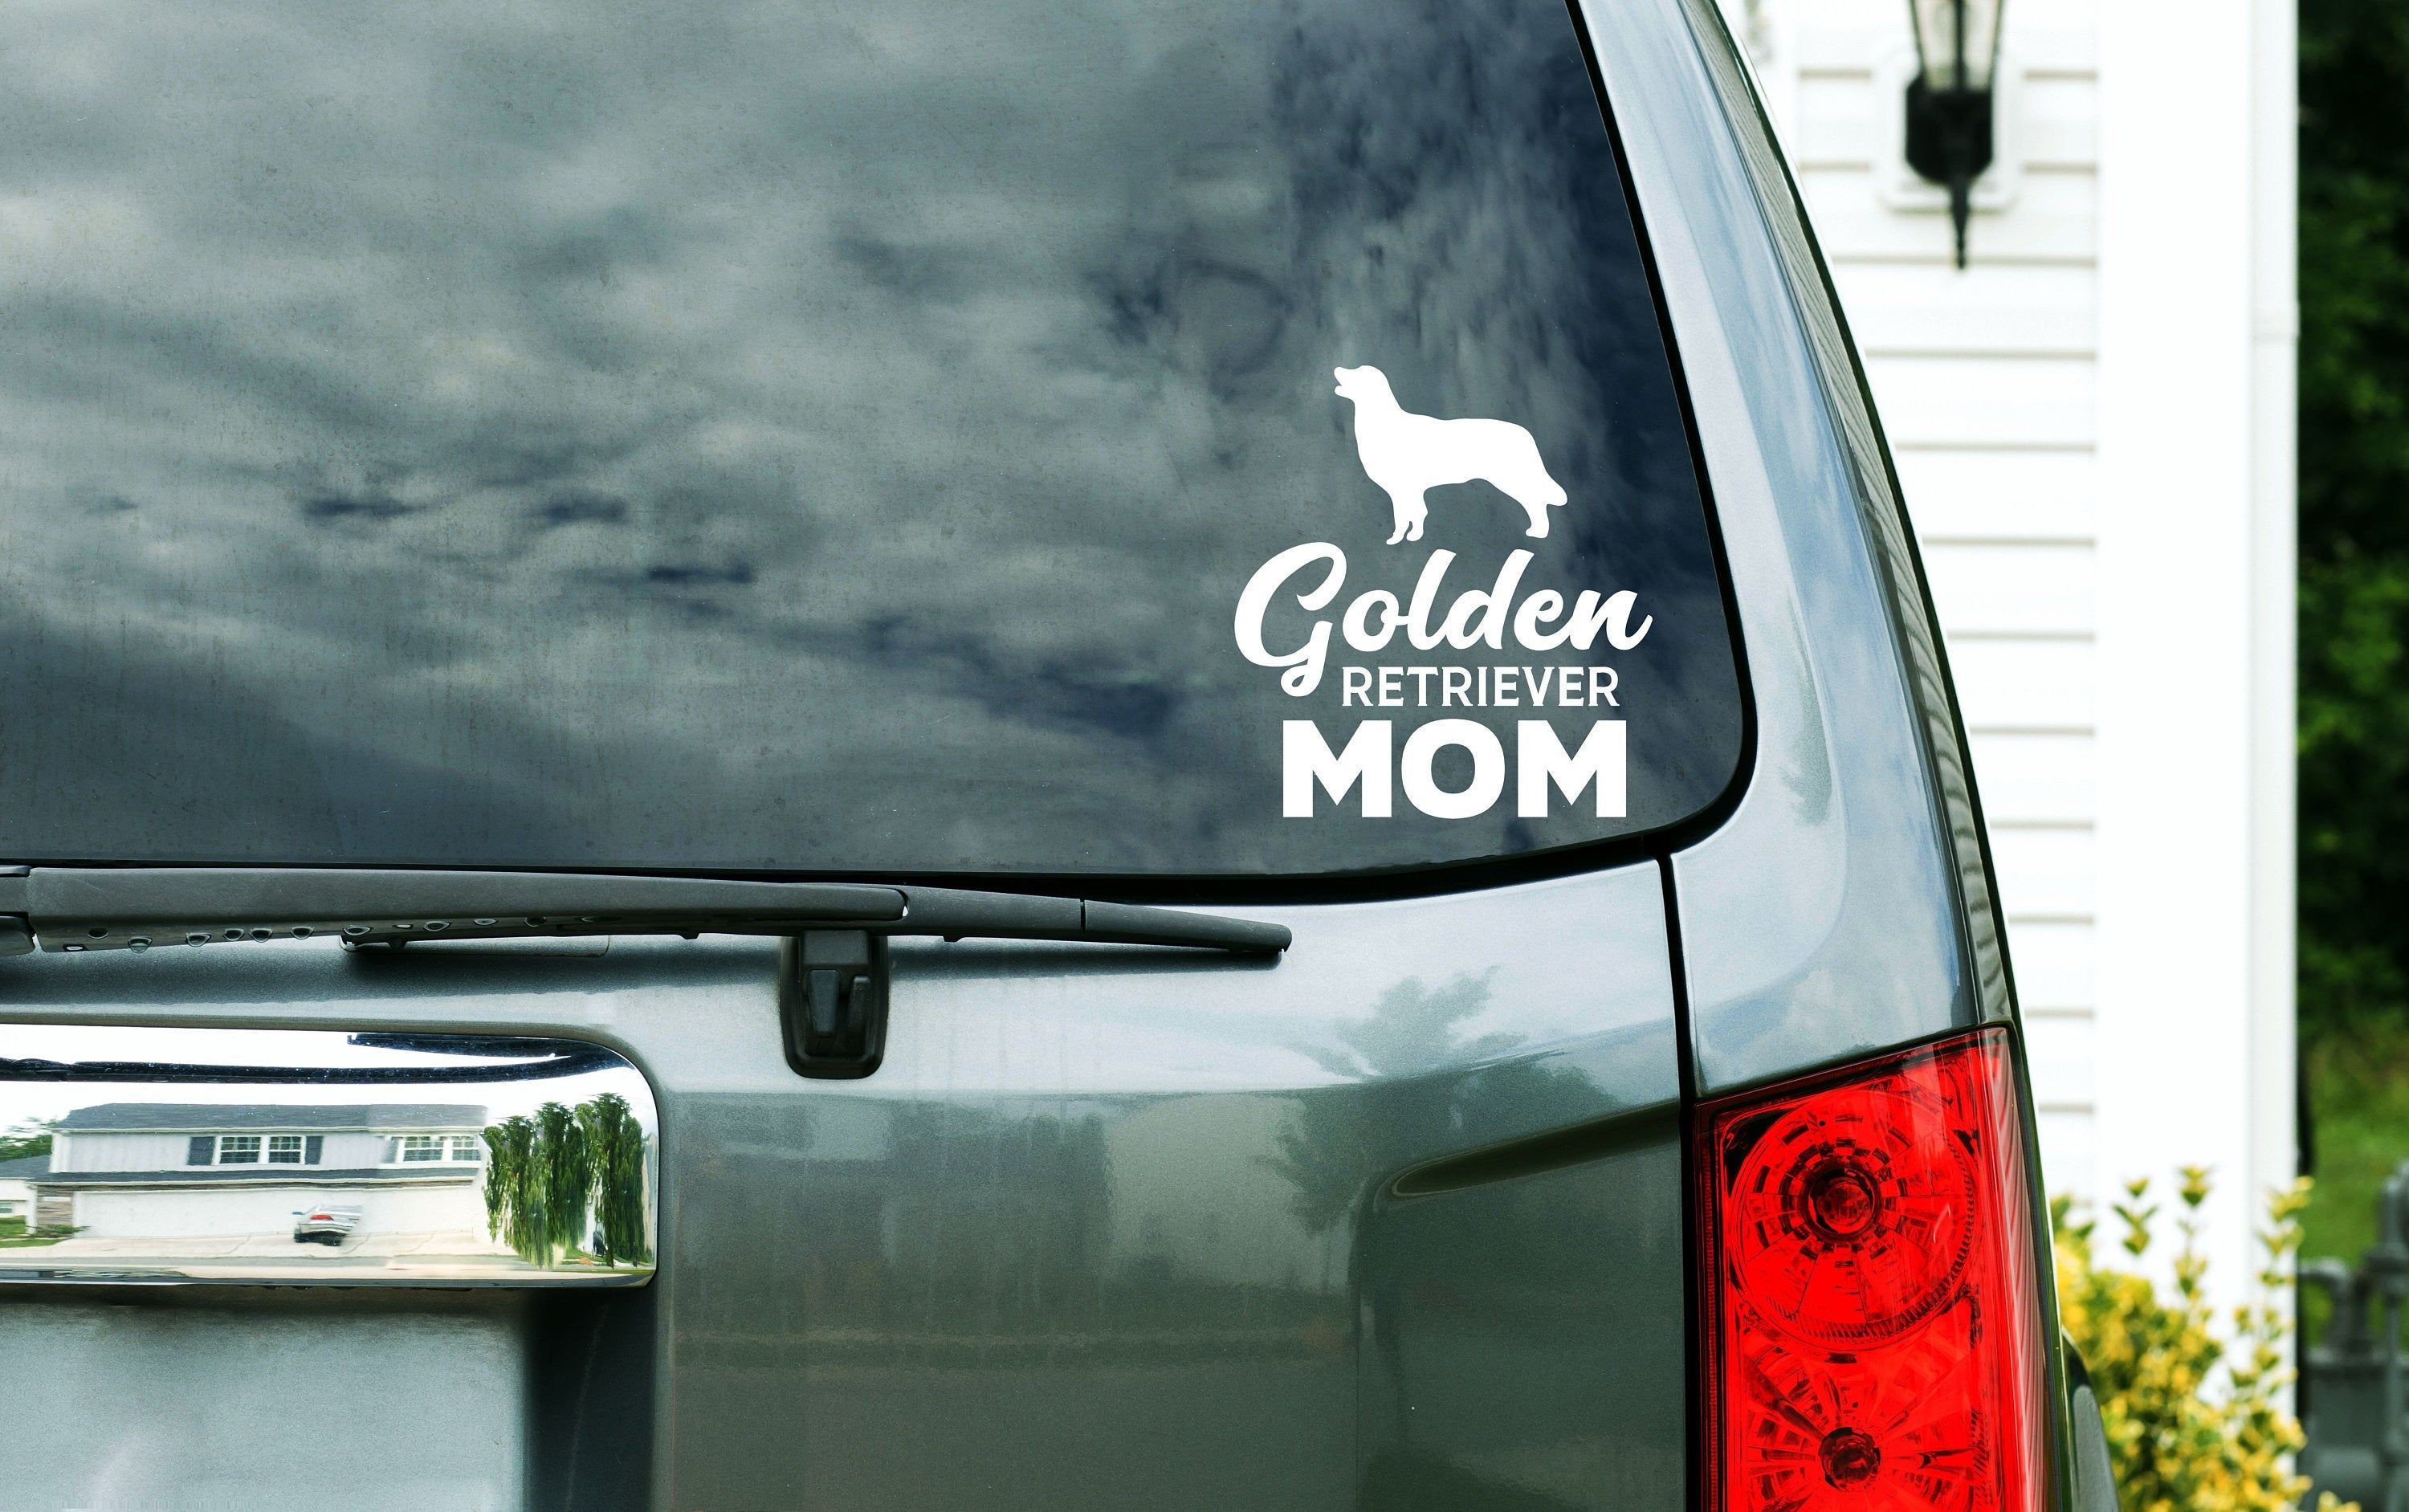 Golden Retriever Mom Dog Breed Silhouette Custom Vinyl Decal Sticker Choose Your Color And Size Car Window Decal Pet Decal In 2020 Custom Vinyl Decal Custom Vinyl Vinyl Decal Stickers [ 1883 x 3000 Pixel ]